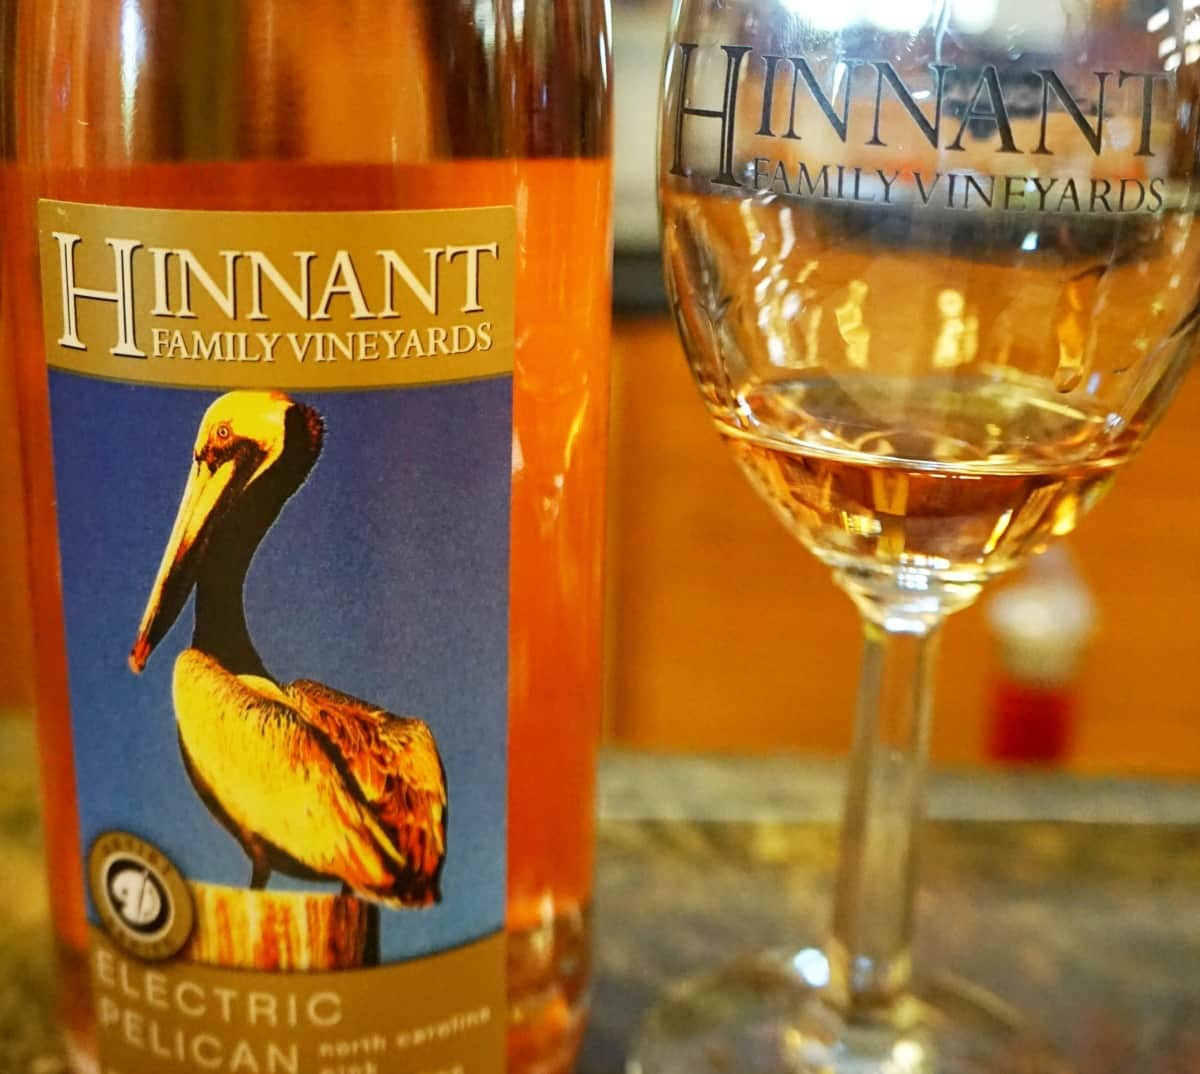 Made from American grapes, muscadine wine is a sweet wine, almost like a dessert wine. And while the fruit is already sweet many of the winemakers add sugar. Muscadine wines pairs with beef, lamb, and seafood.| wine | Hinnant Vineyards | Things to do in Johnston County, North Carolina | TravelingWellForLess.com